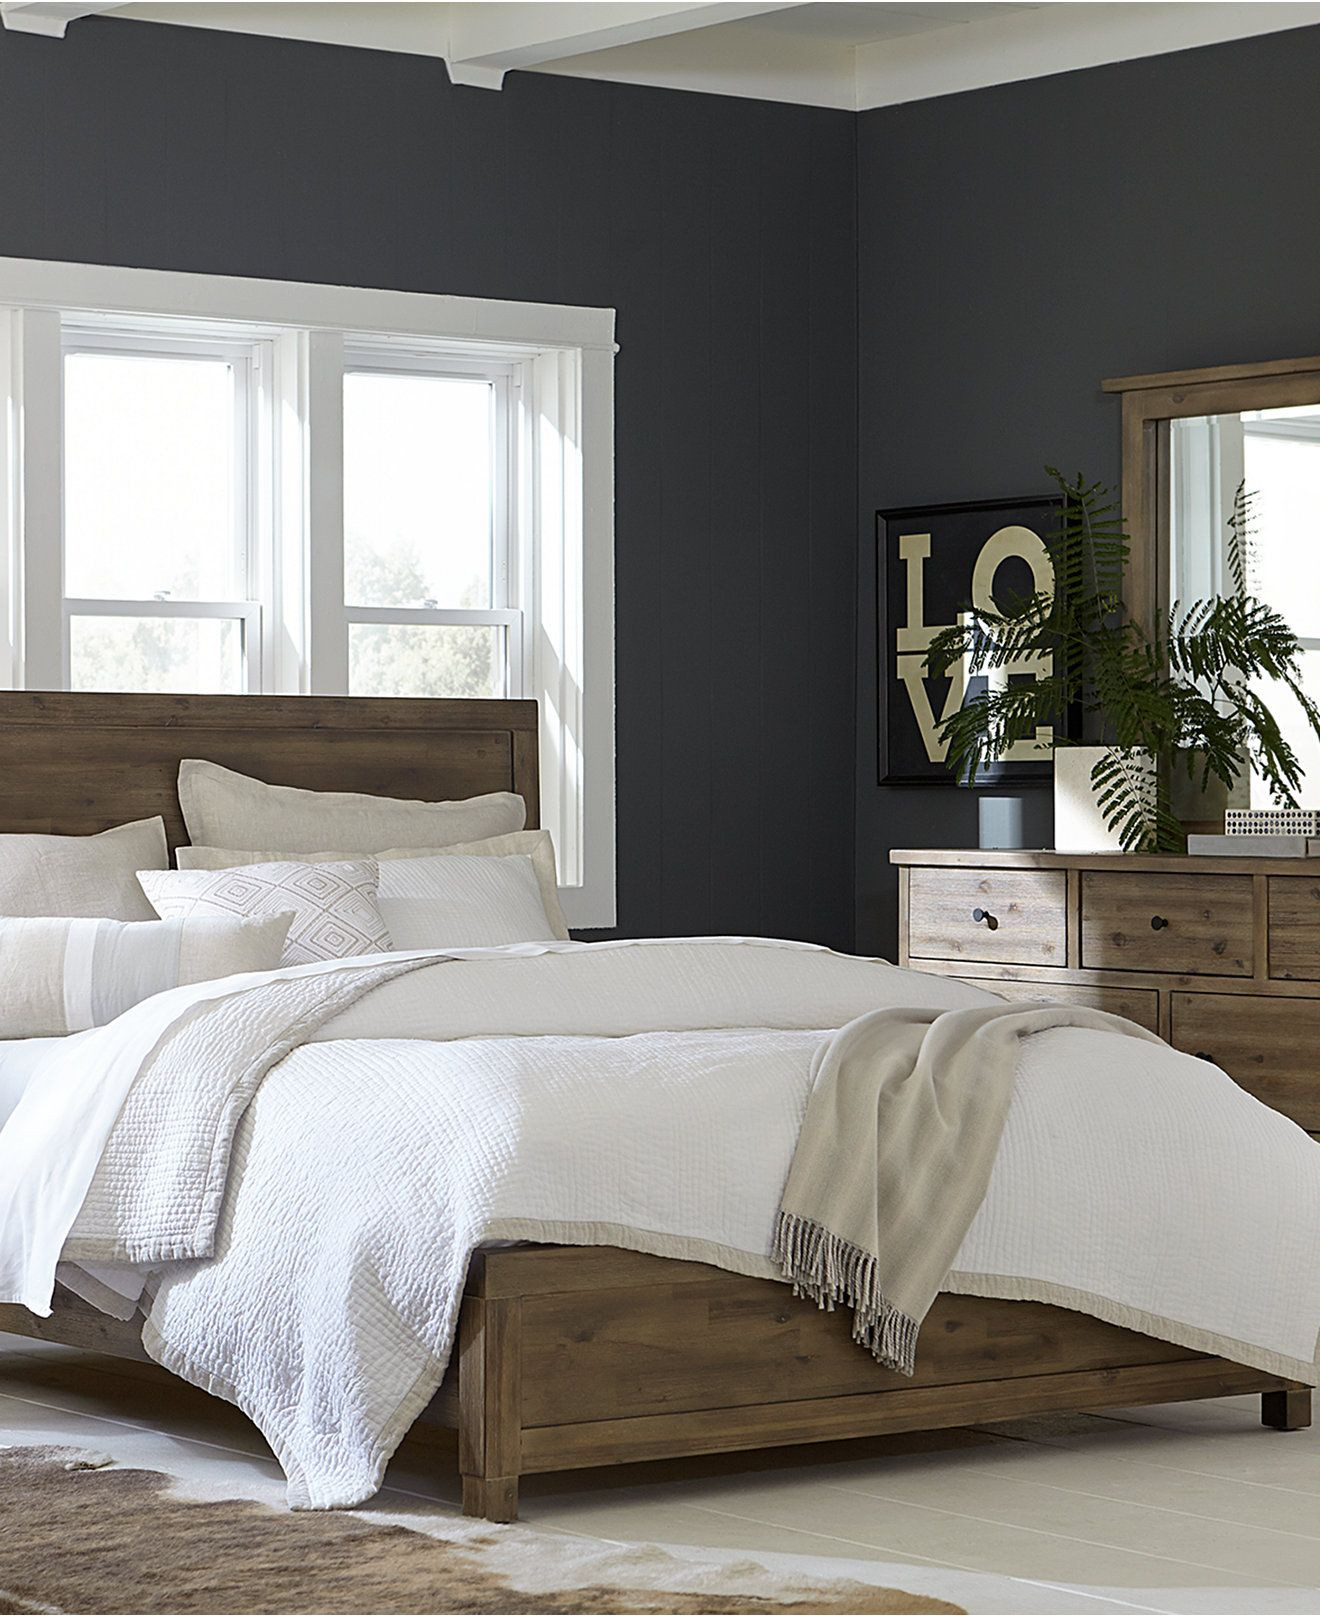 Best ideas about Macys Bedroom Sets . Save or Pin Canyon Platform Bedroom Furniture Collection Created for Now.